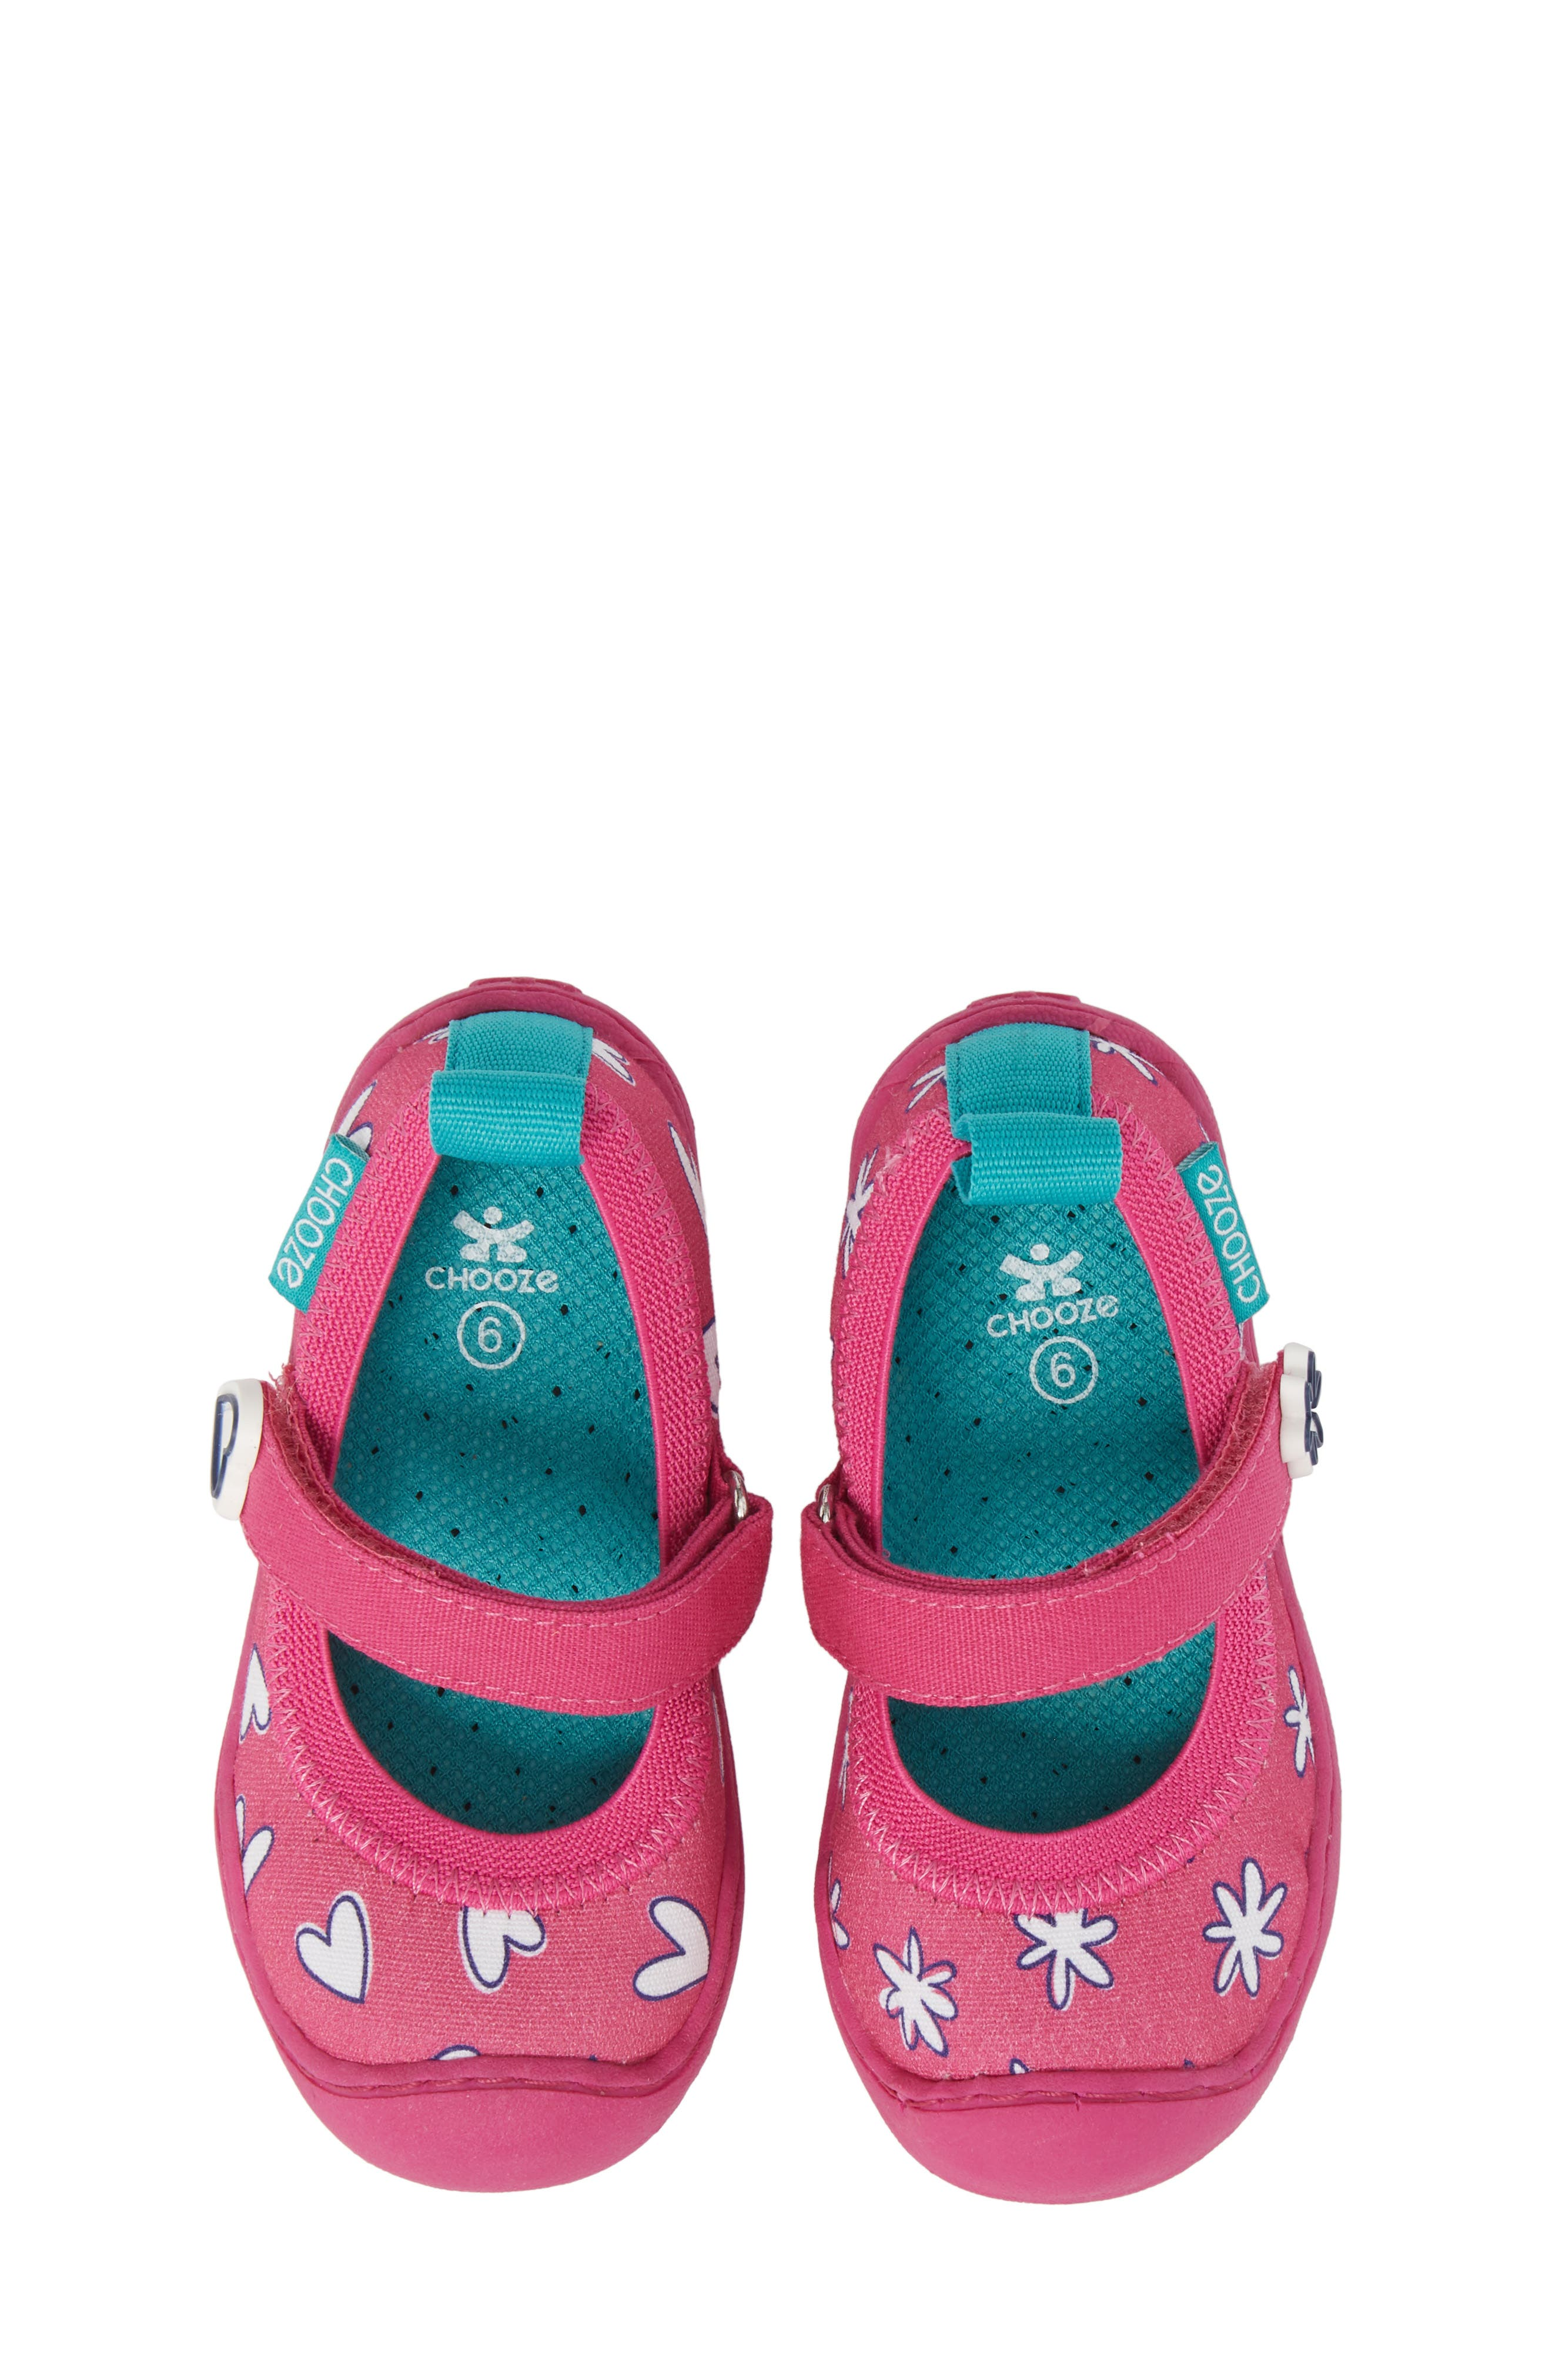 CHOOZE Steady Mary Jane Sneaker (Baby, Walker, Toddler & Little Kid)